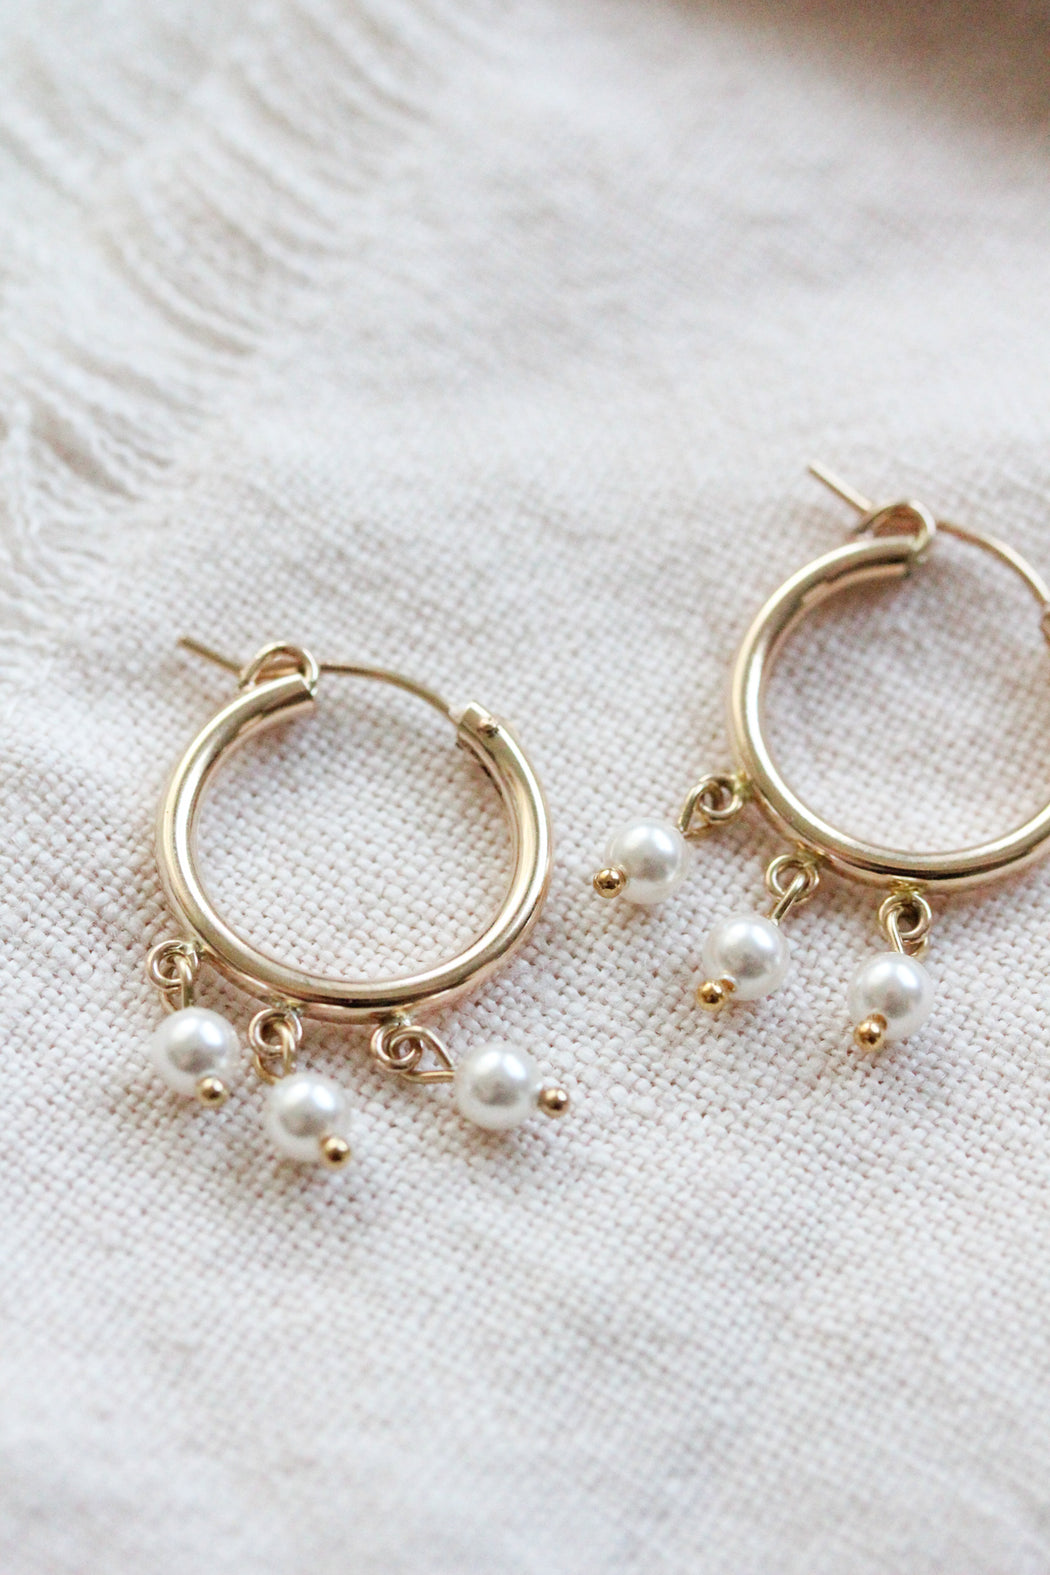 Newport Hoop Earrings w/Dangling Beads